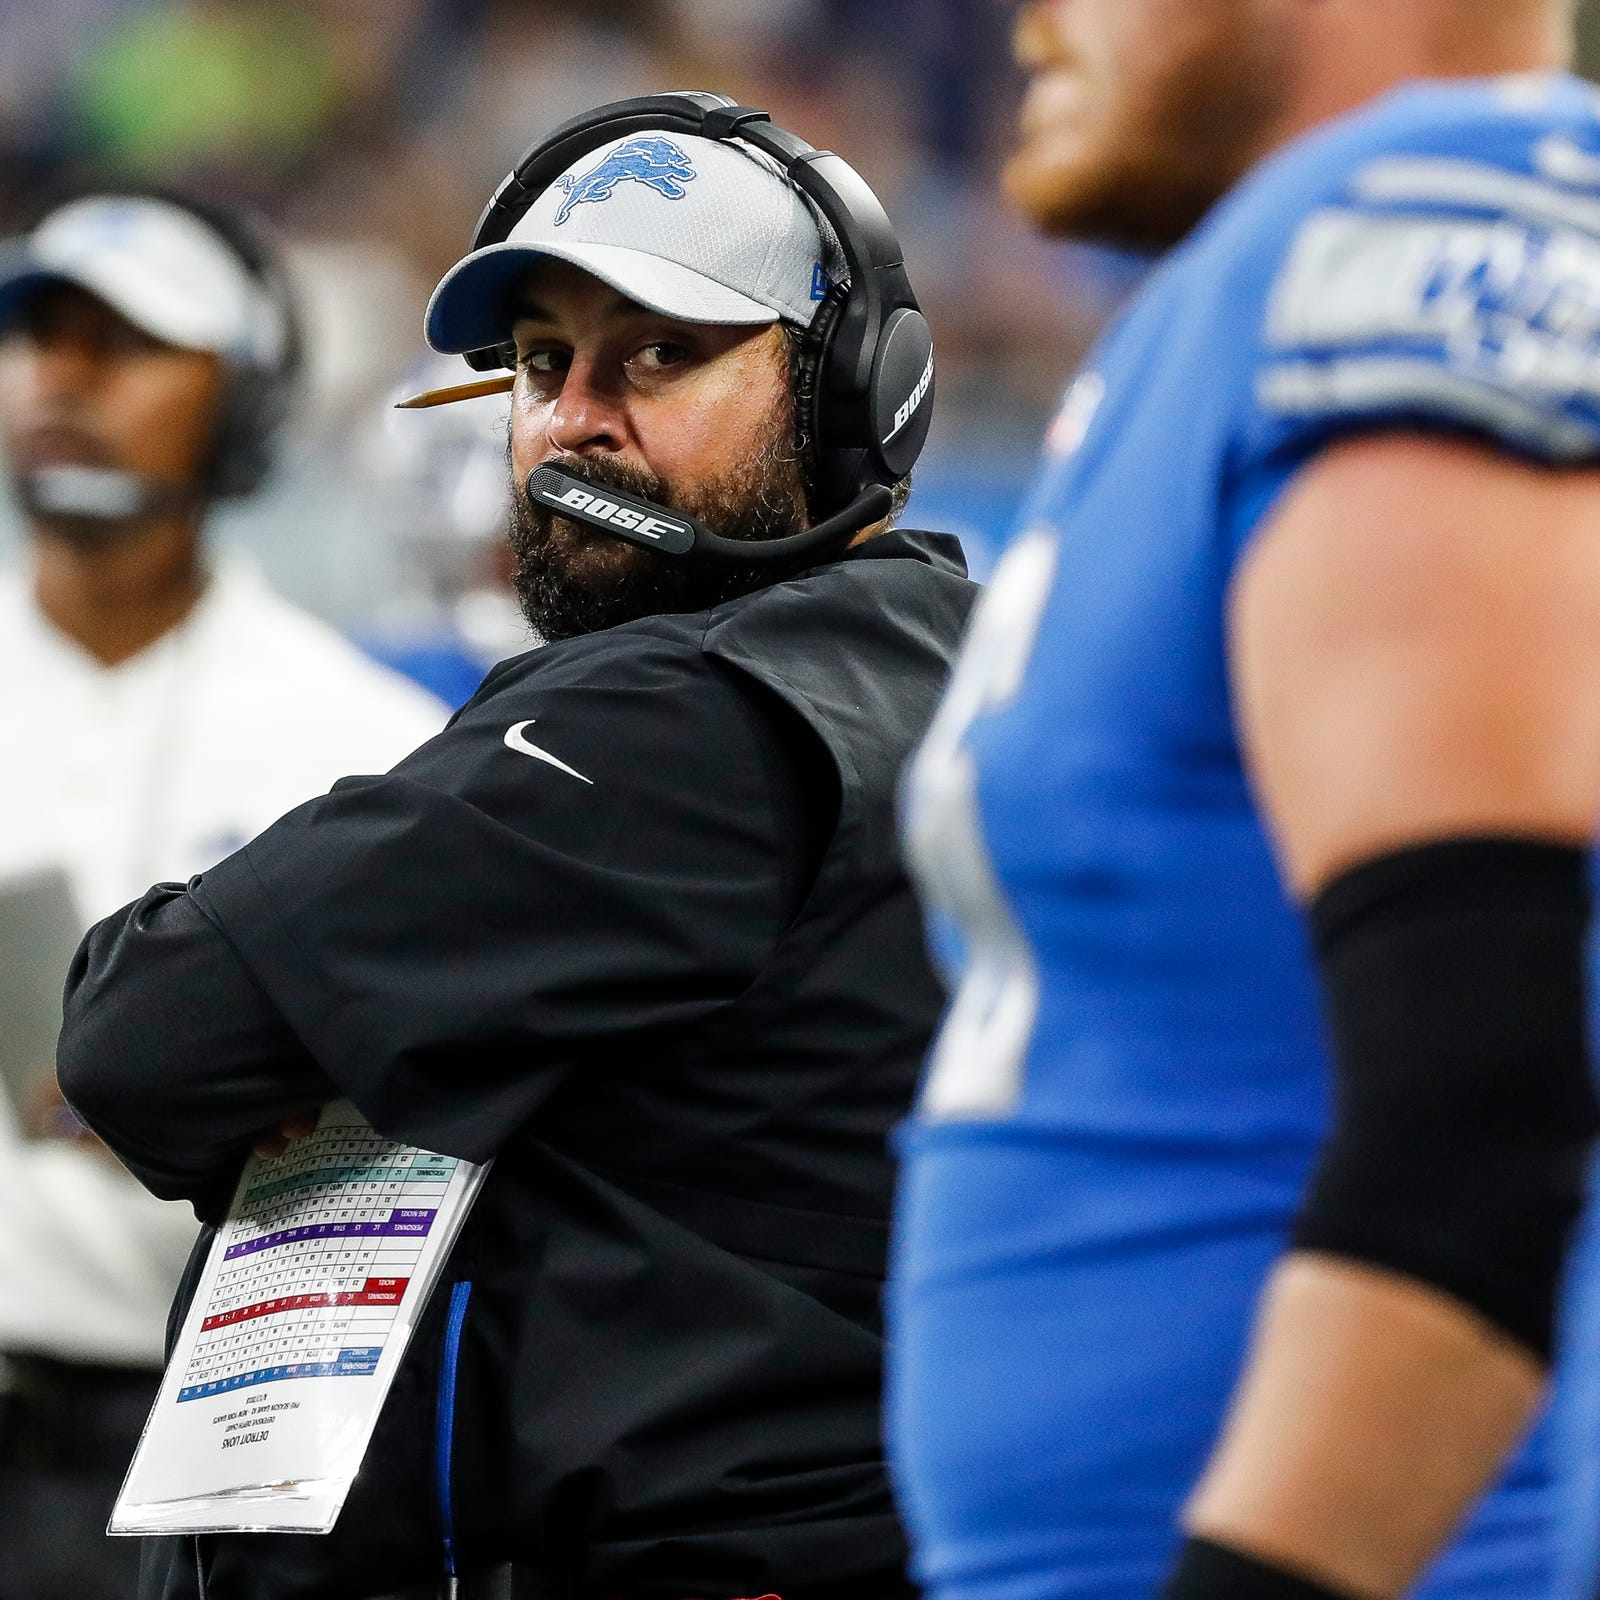 Inside the Lions: Is it time to panic about Lions' rough preseason?